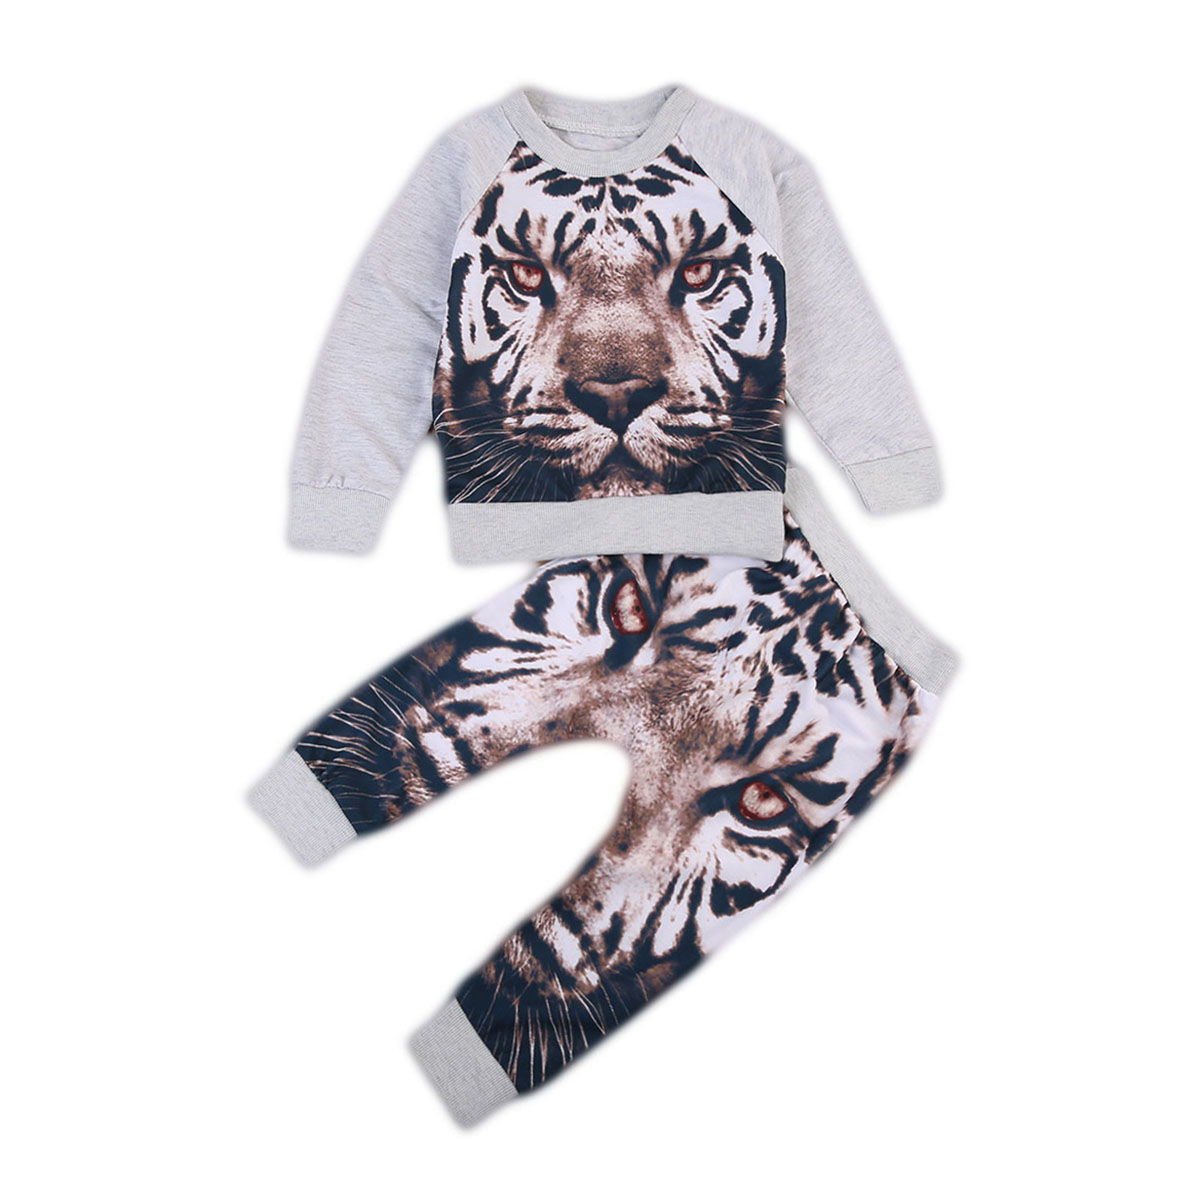 Baby Boy Clothes Set 2017 New Autumn Spring Long Sleeve Tiger Print Costume Outfits Clothes T-shirt Tops+ Long Pants 2pcs Set dreamr new white cap sleeve burnout tiger face t shirt s $38 dbfl